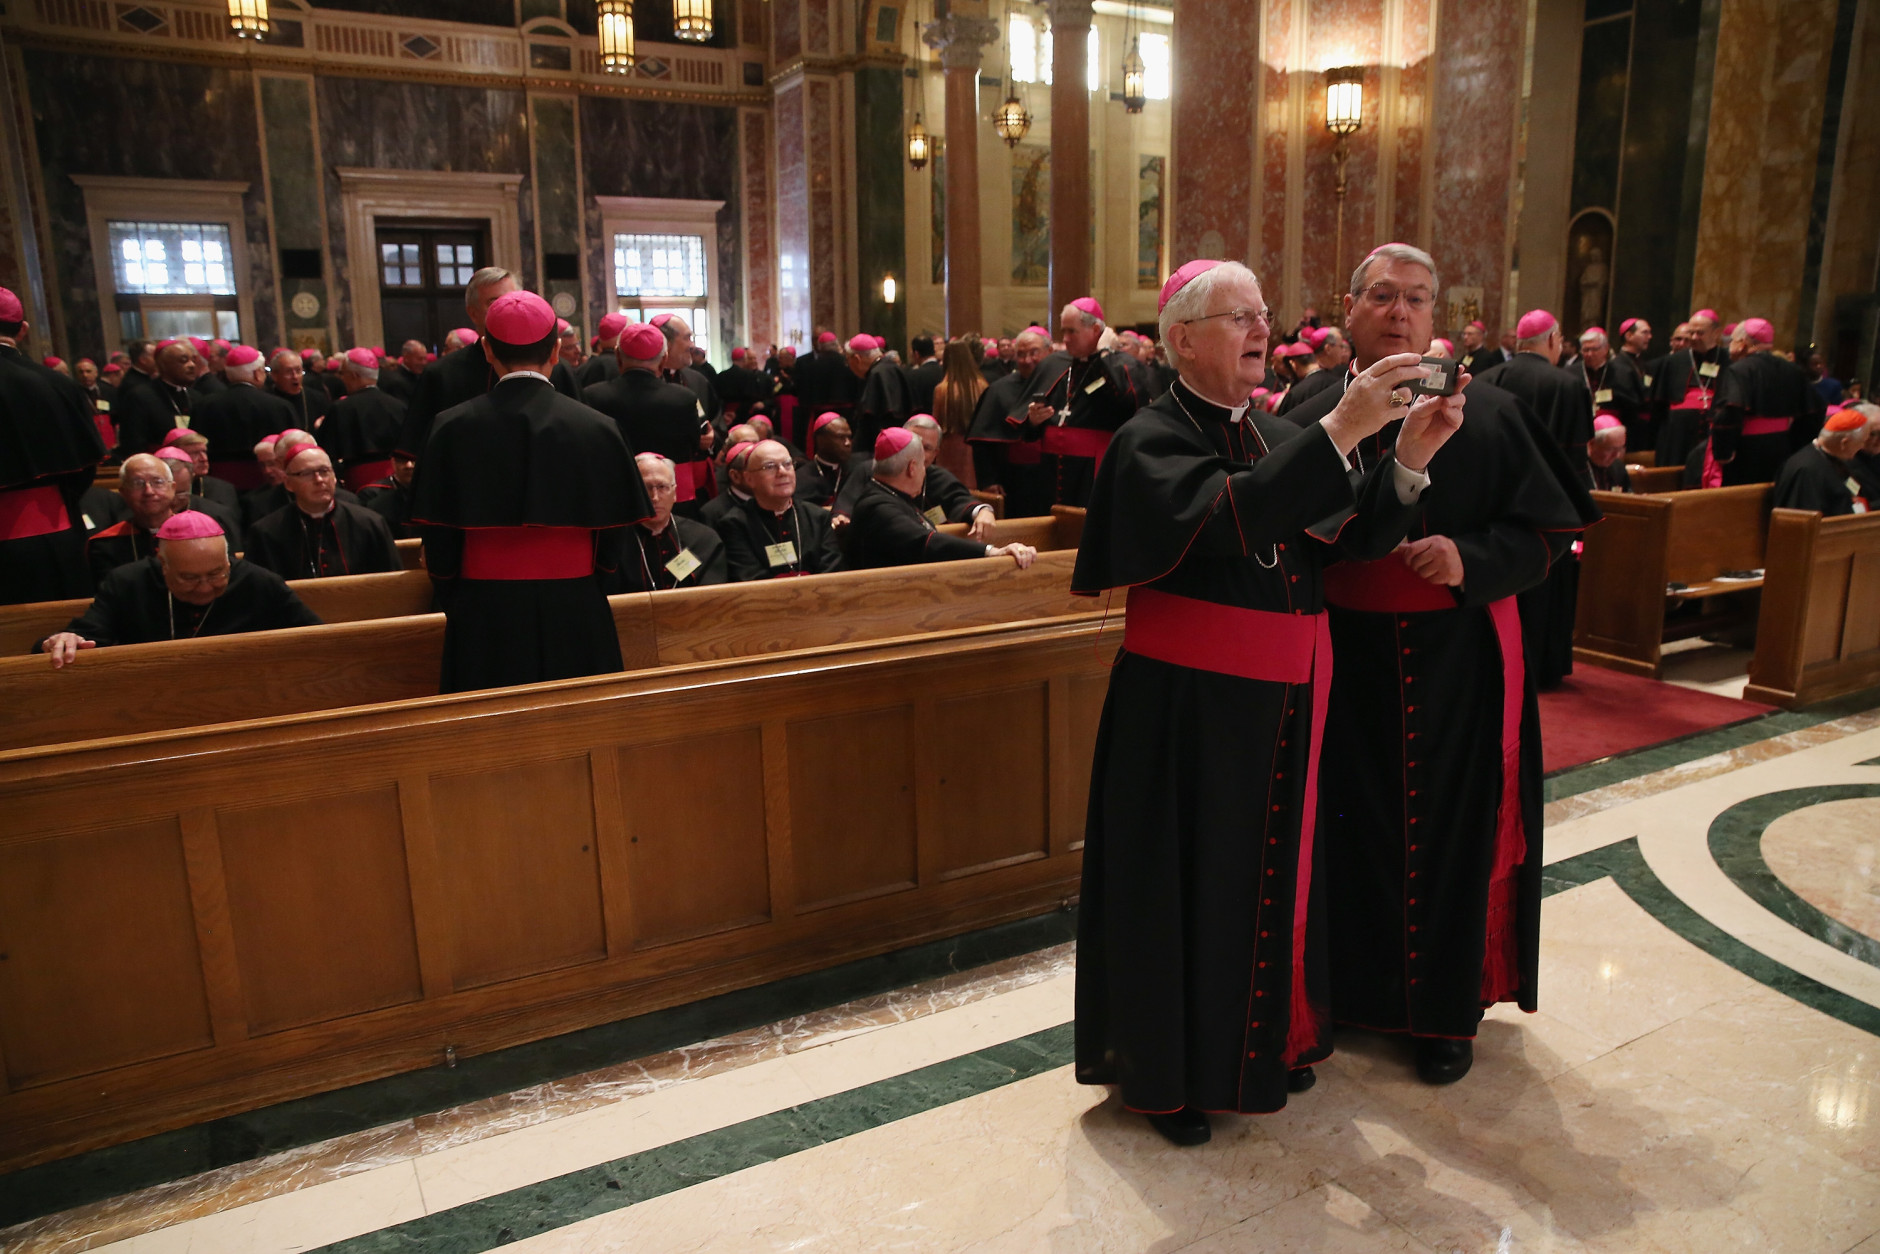 WASHINGTON, DC - SEPTEMBER 23:  Bishop J. Kevin Boland (L) and Bishop Gregory J. Hartmayer (R), from Savannah, Georgia, take a photo prior to the midday prayer service at the Cathedral of St. Matthew on September 23, 2015 in Washington, DC. The Pope began his first trip to the United States at the White House followed by a visit to St. Matthew's Cathedral, and will then hold a Mass on the grounds of the Basilica of the National Shrine of the Immaculate Conception. (Photo by Mark Wilson/Getty Images)